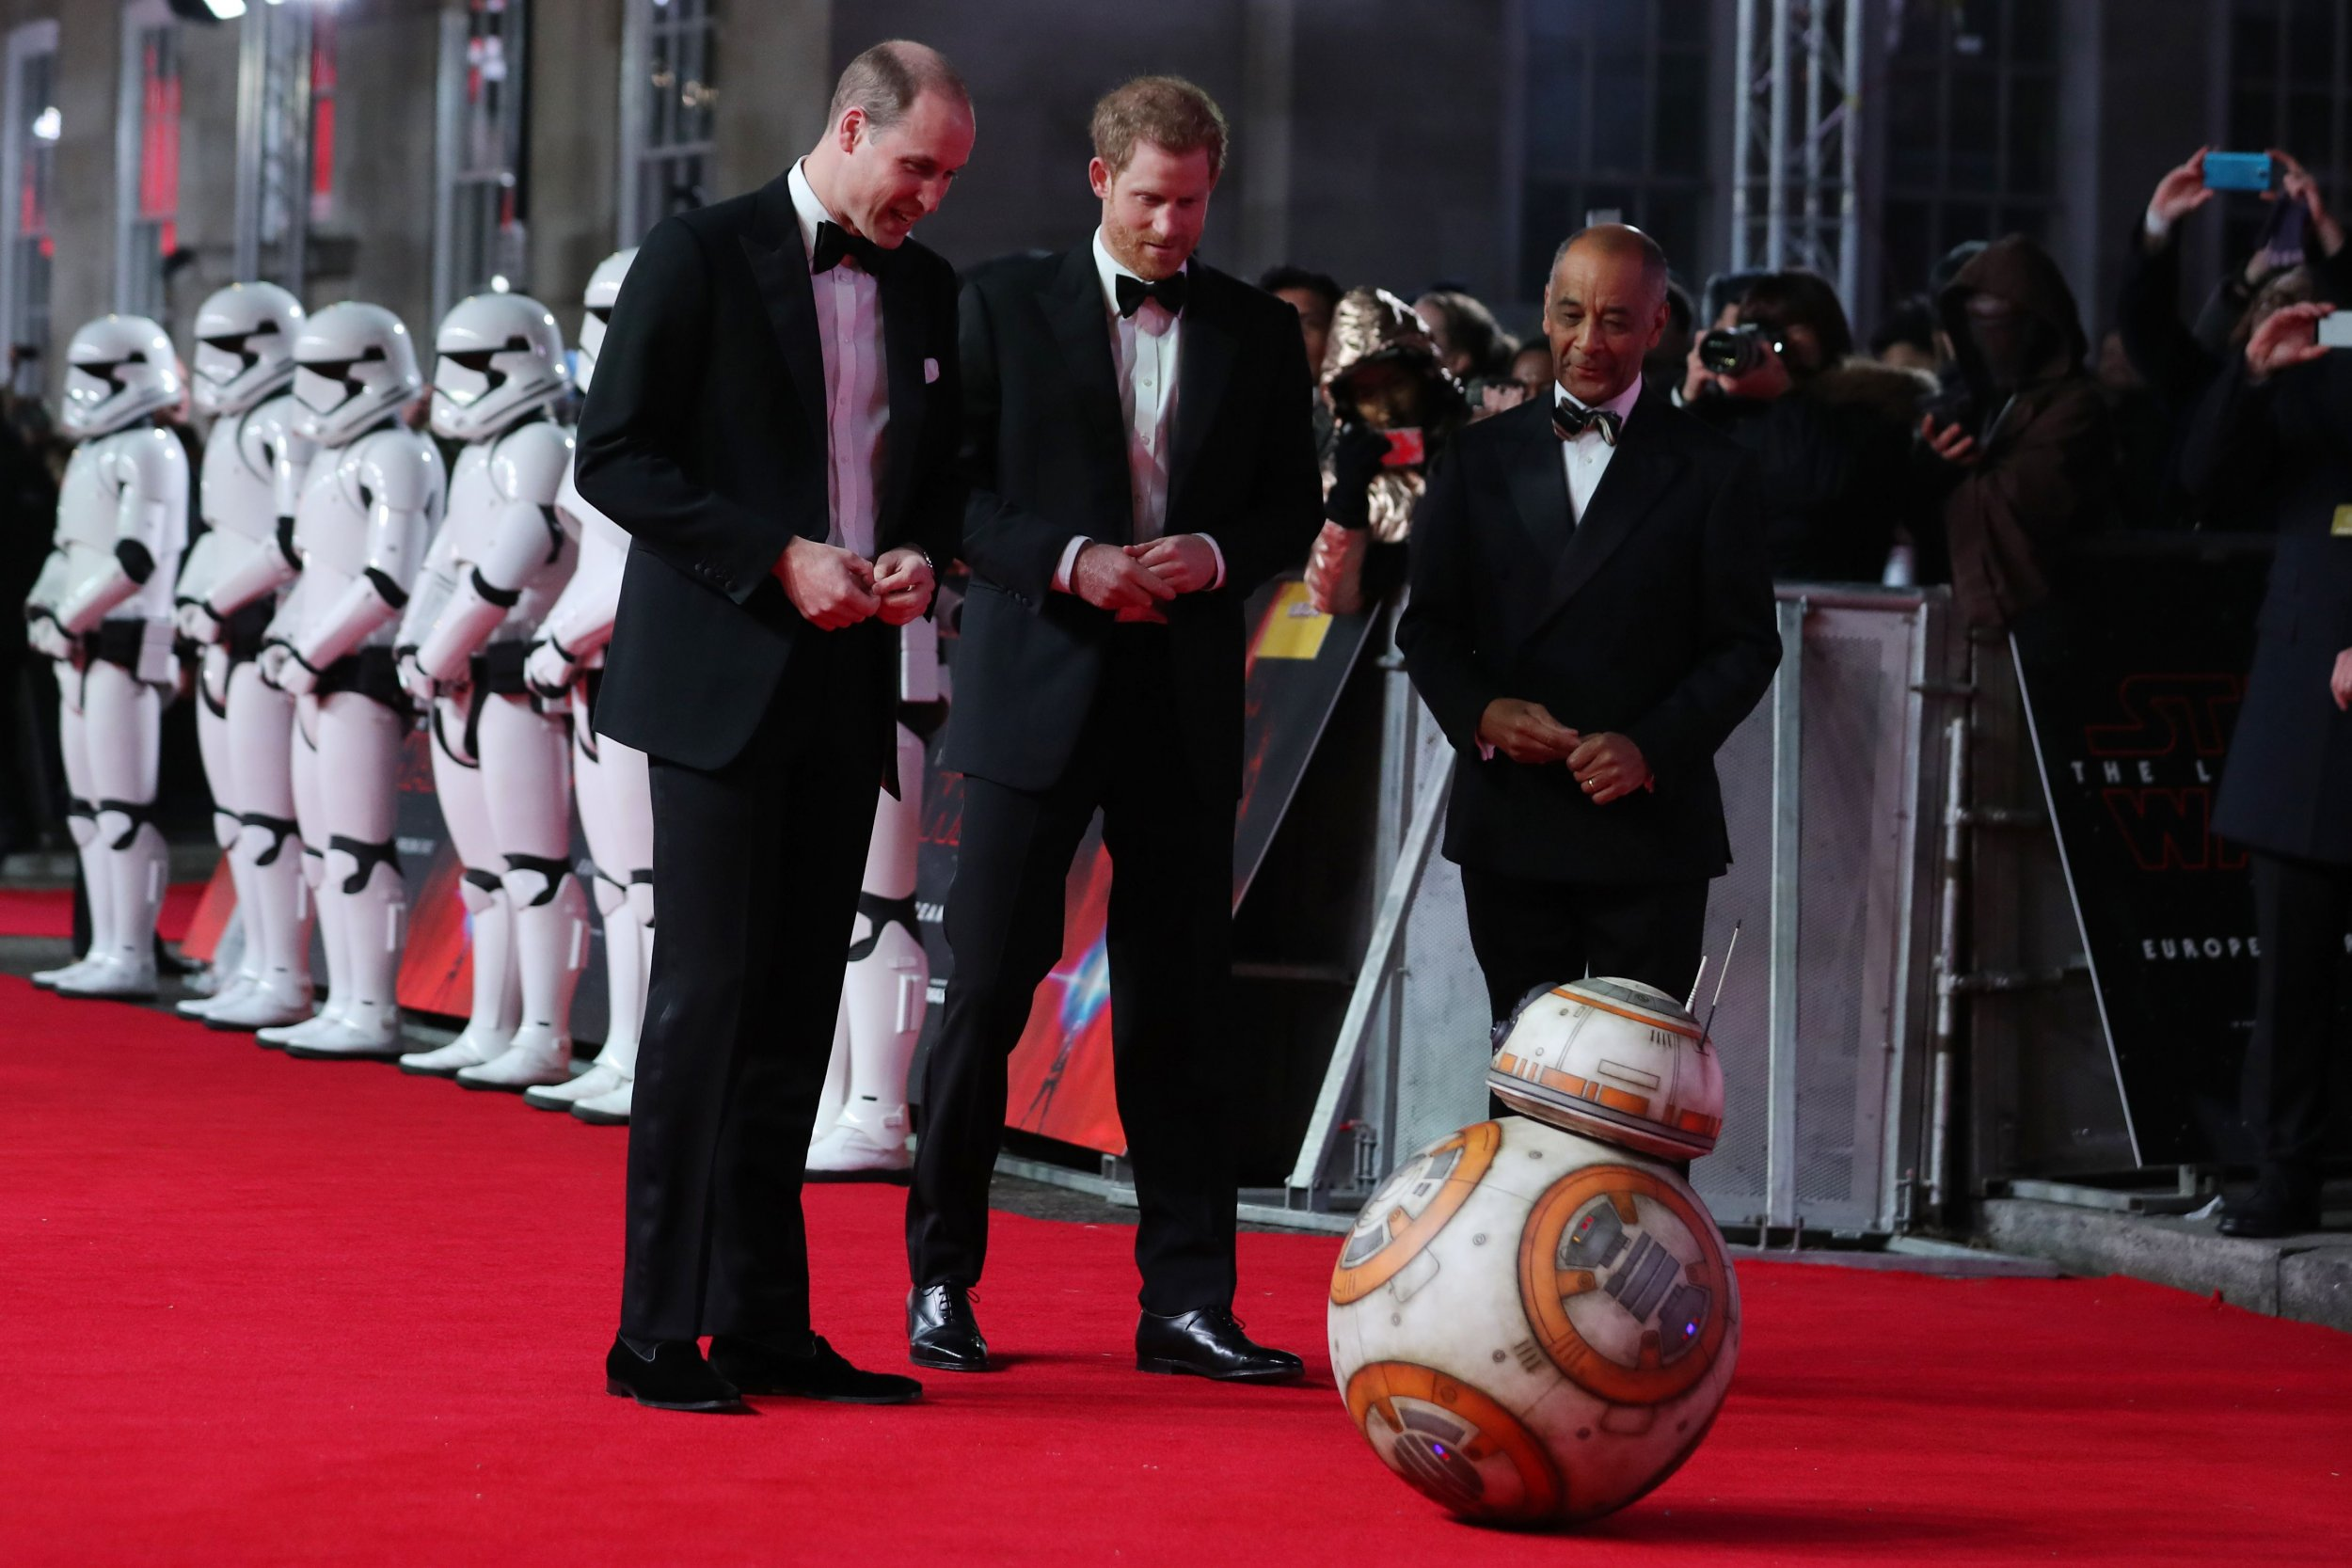 Princes William and Harry at Star Wars premiere